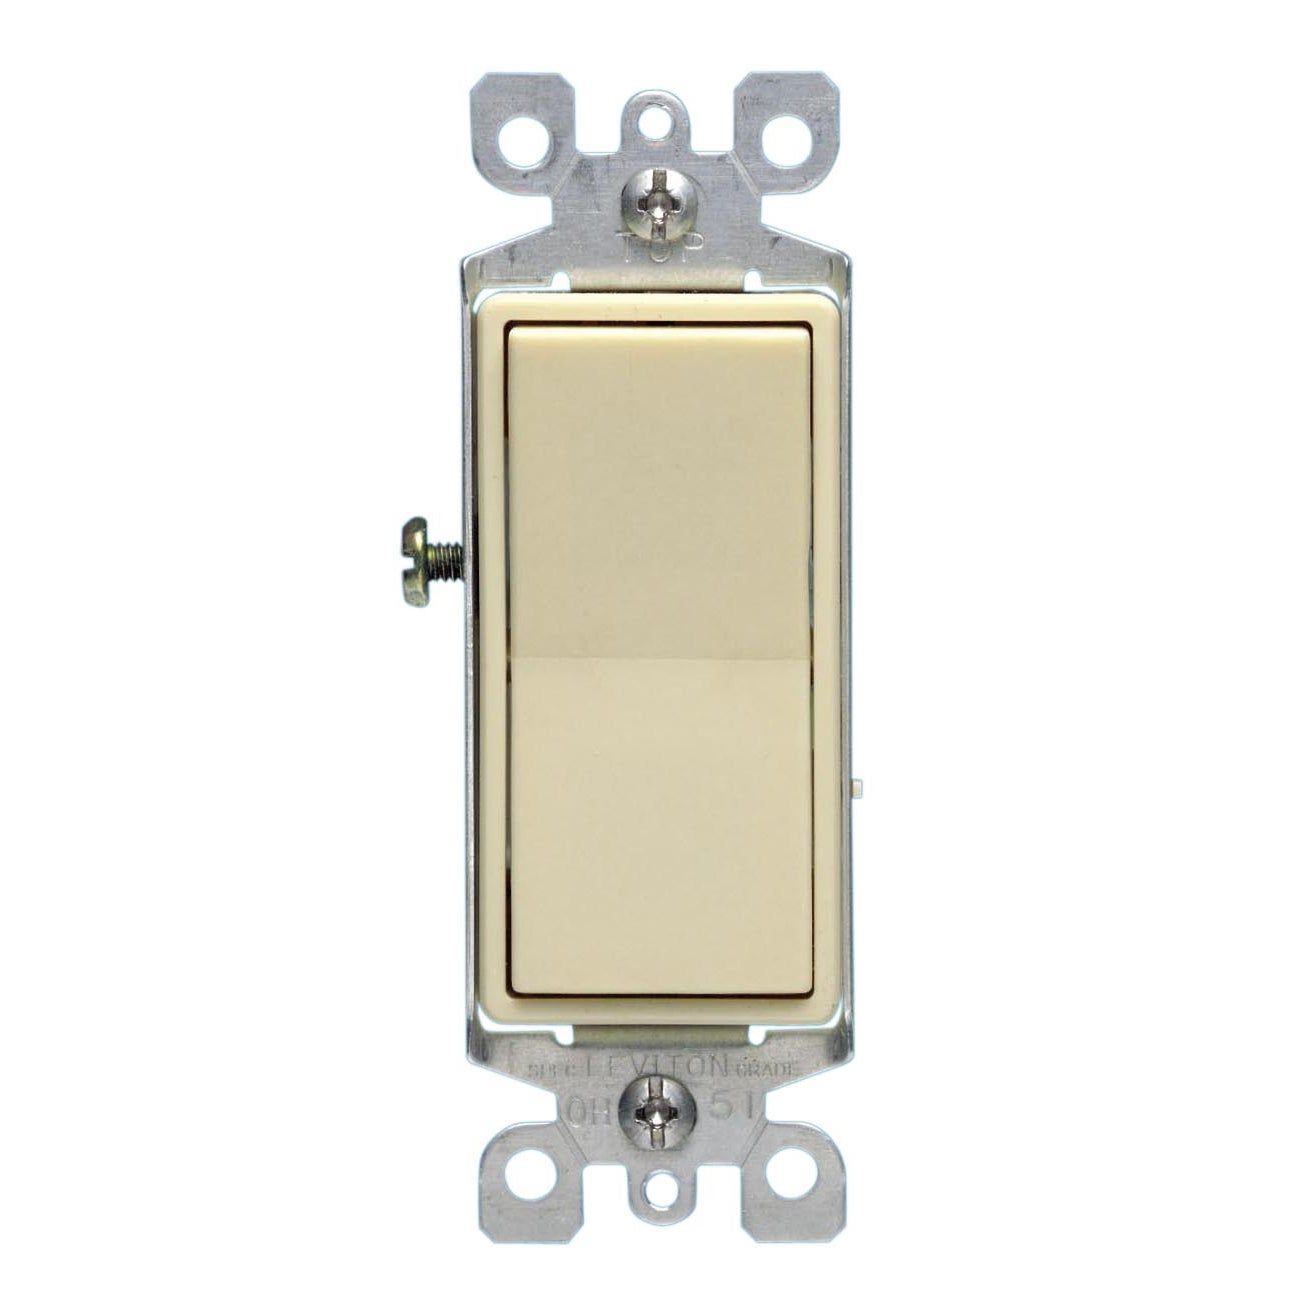 Leviton S11-05611-2IS 15 Amp Almond Color Illuminated Light Switch (Switches&wallplates)